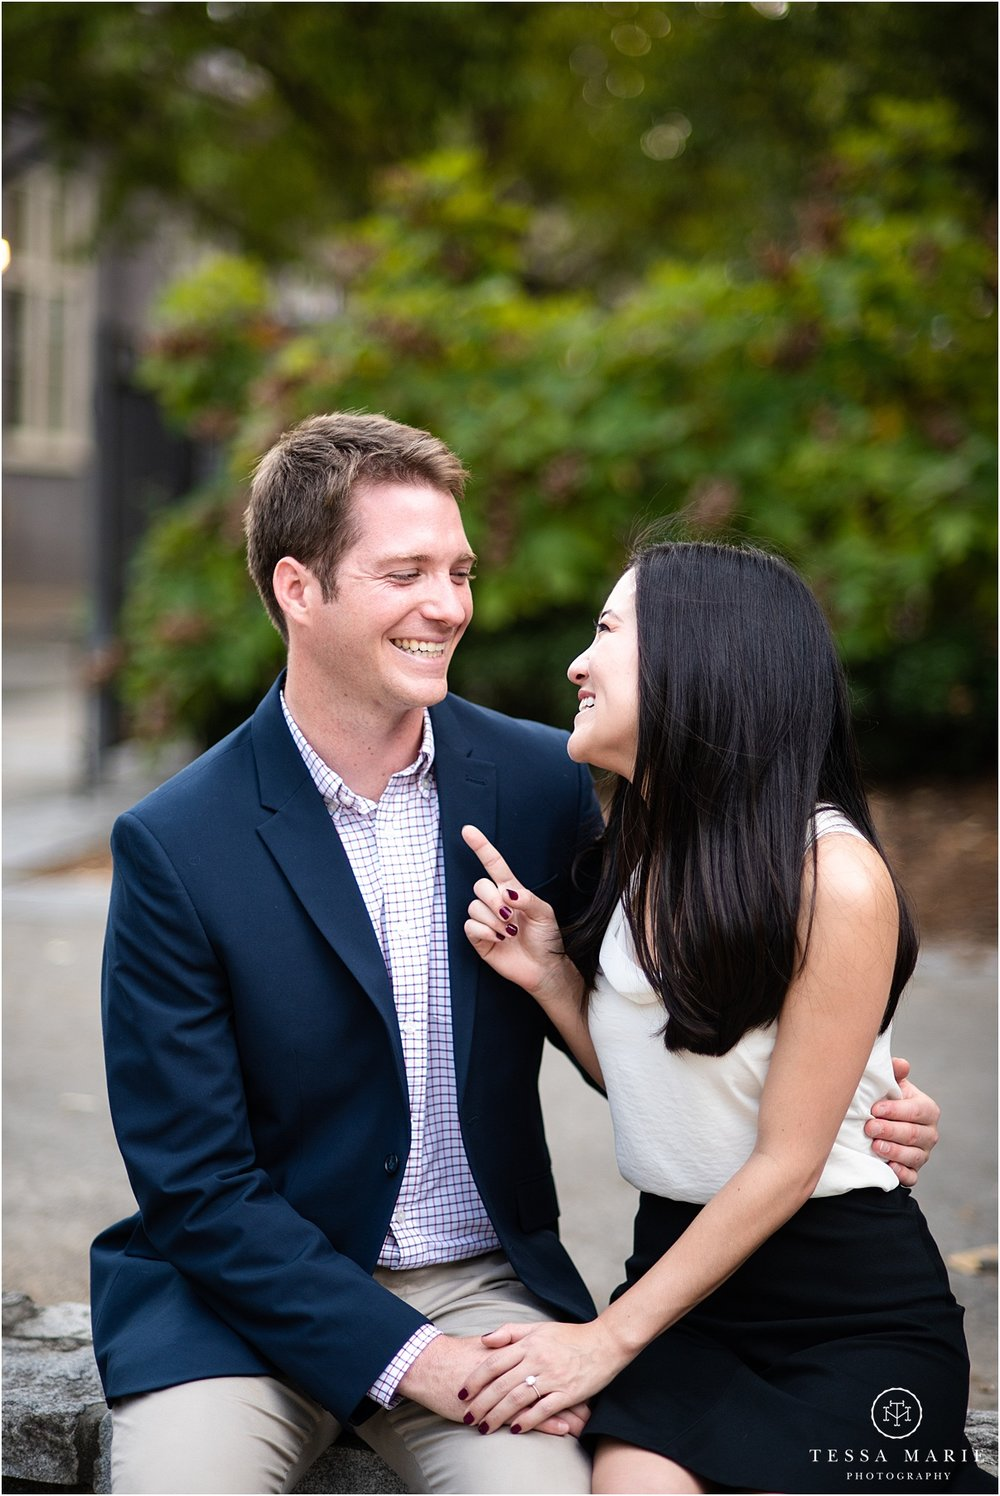 Tessa_marie_photography_wedding_photographer_engagement_pictures_piedmont_park_0056.jpg